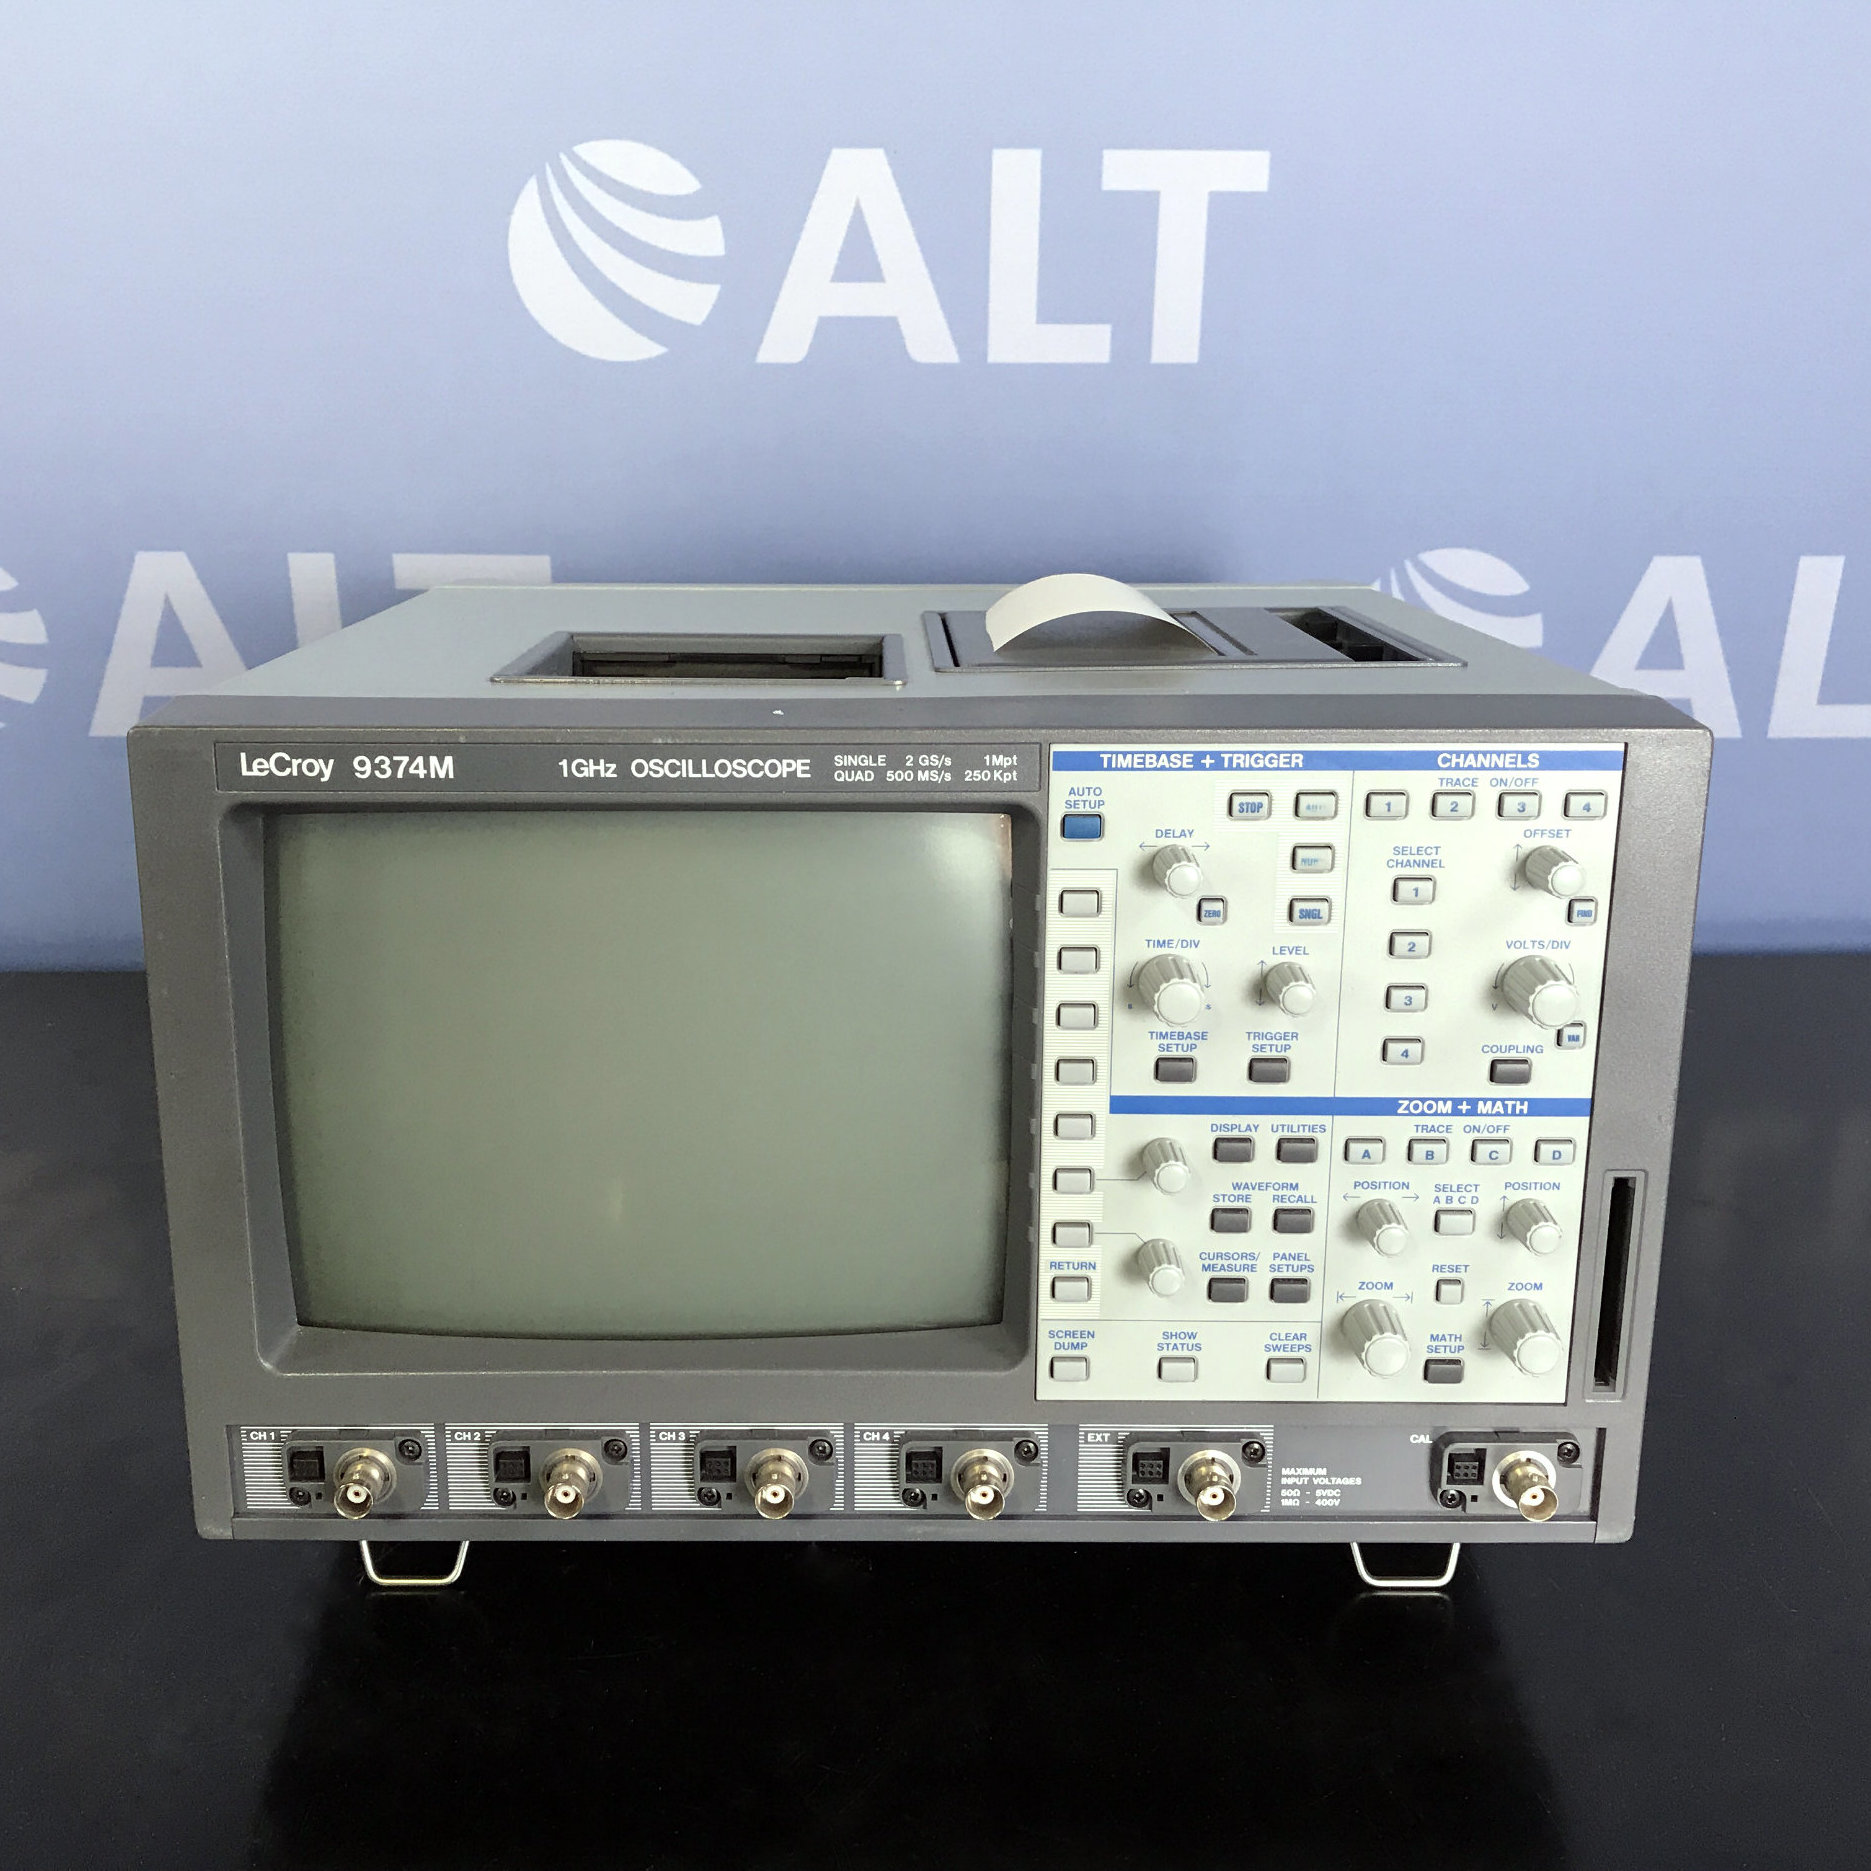 9374M 1GHz 4-Channel Oscilloscope Name